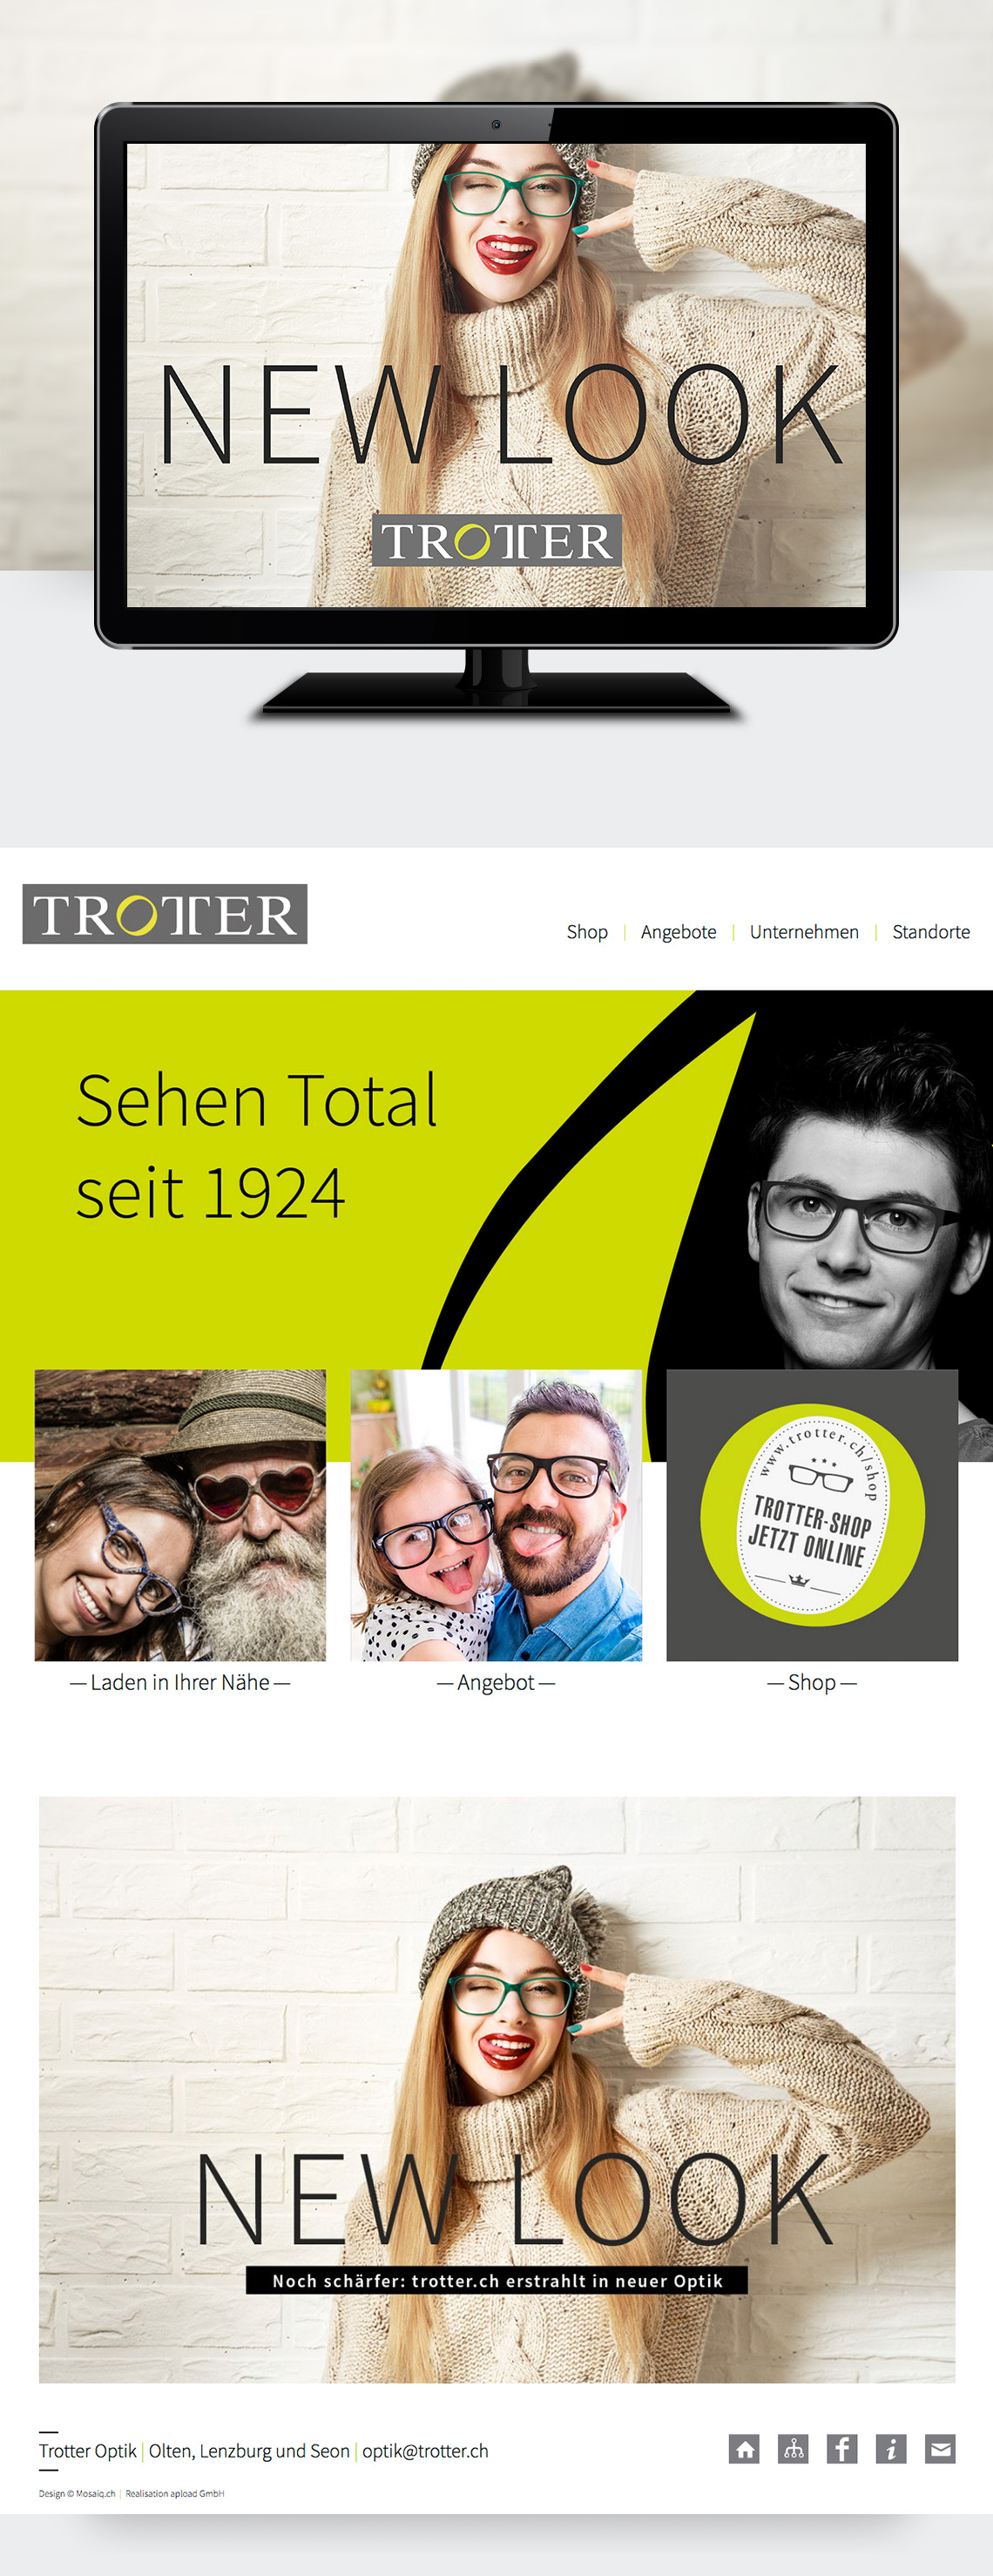 Trotter.ch